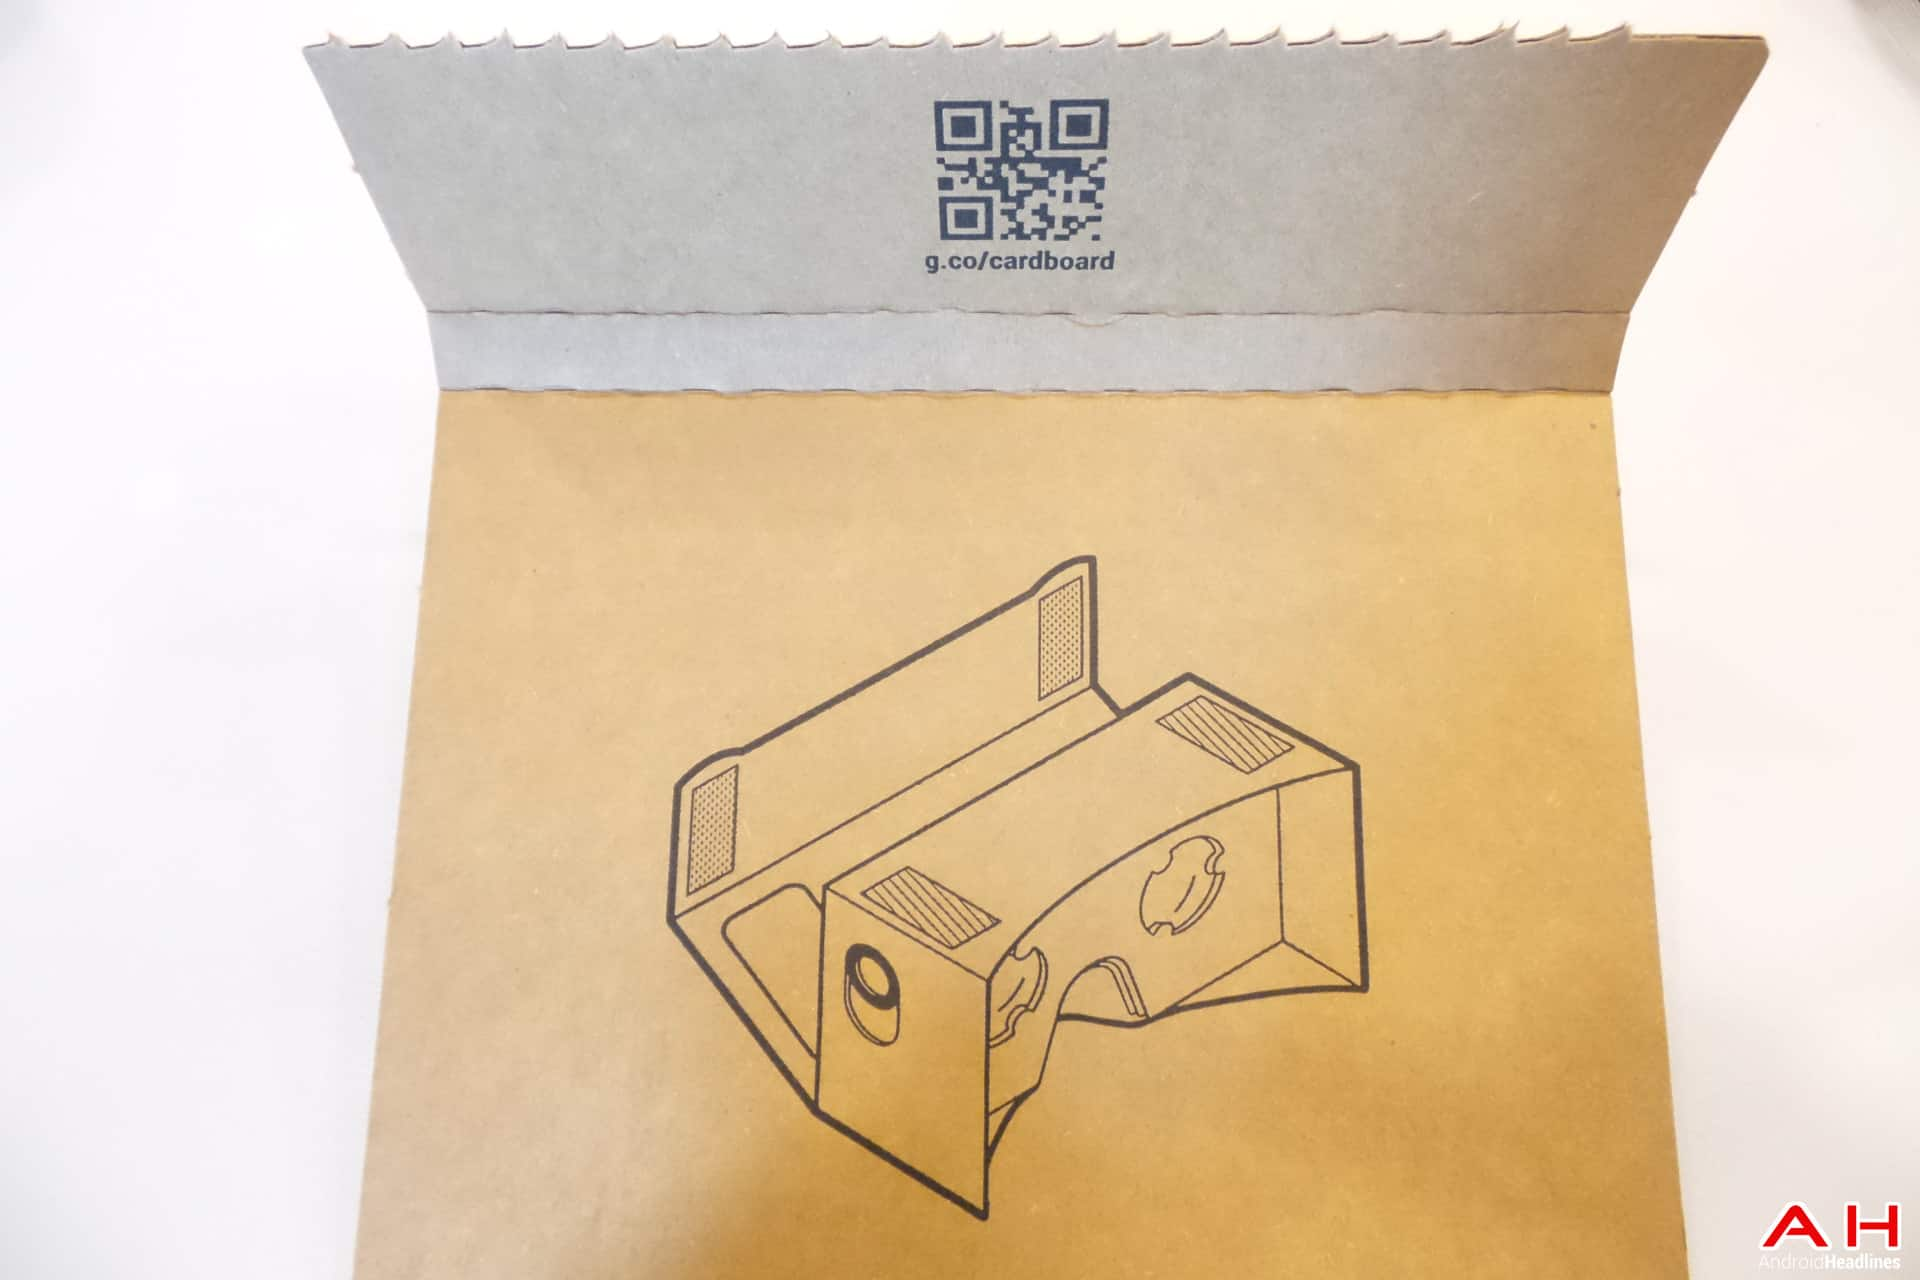 AH Google IO 2014 Cardboard 2 of 4